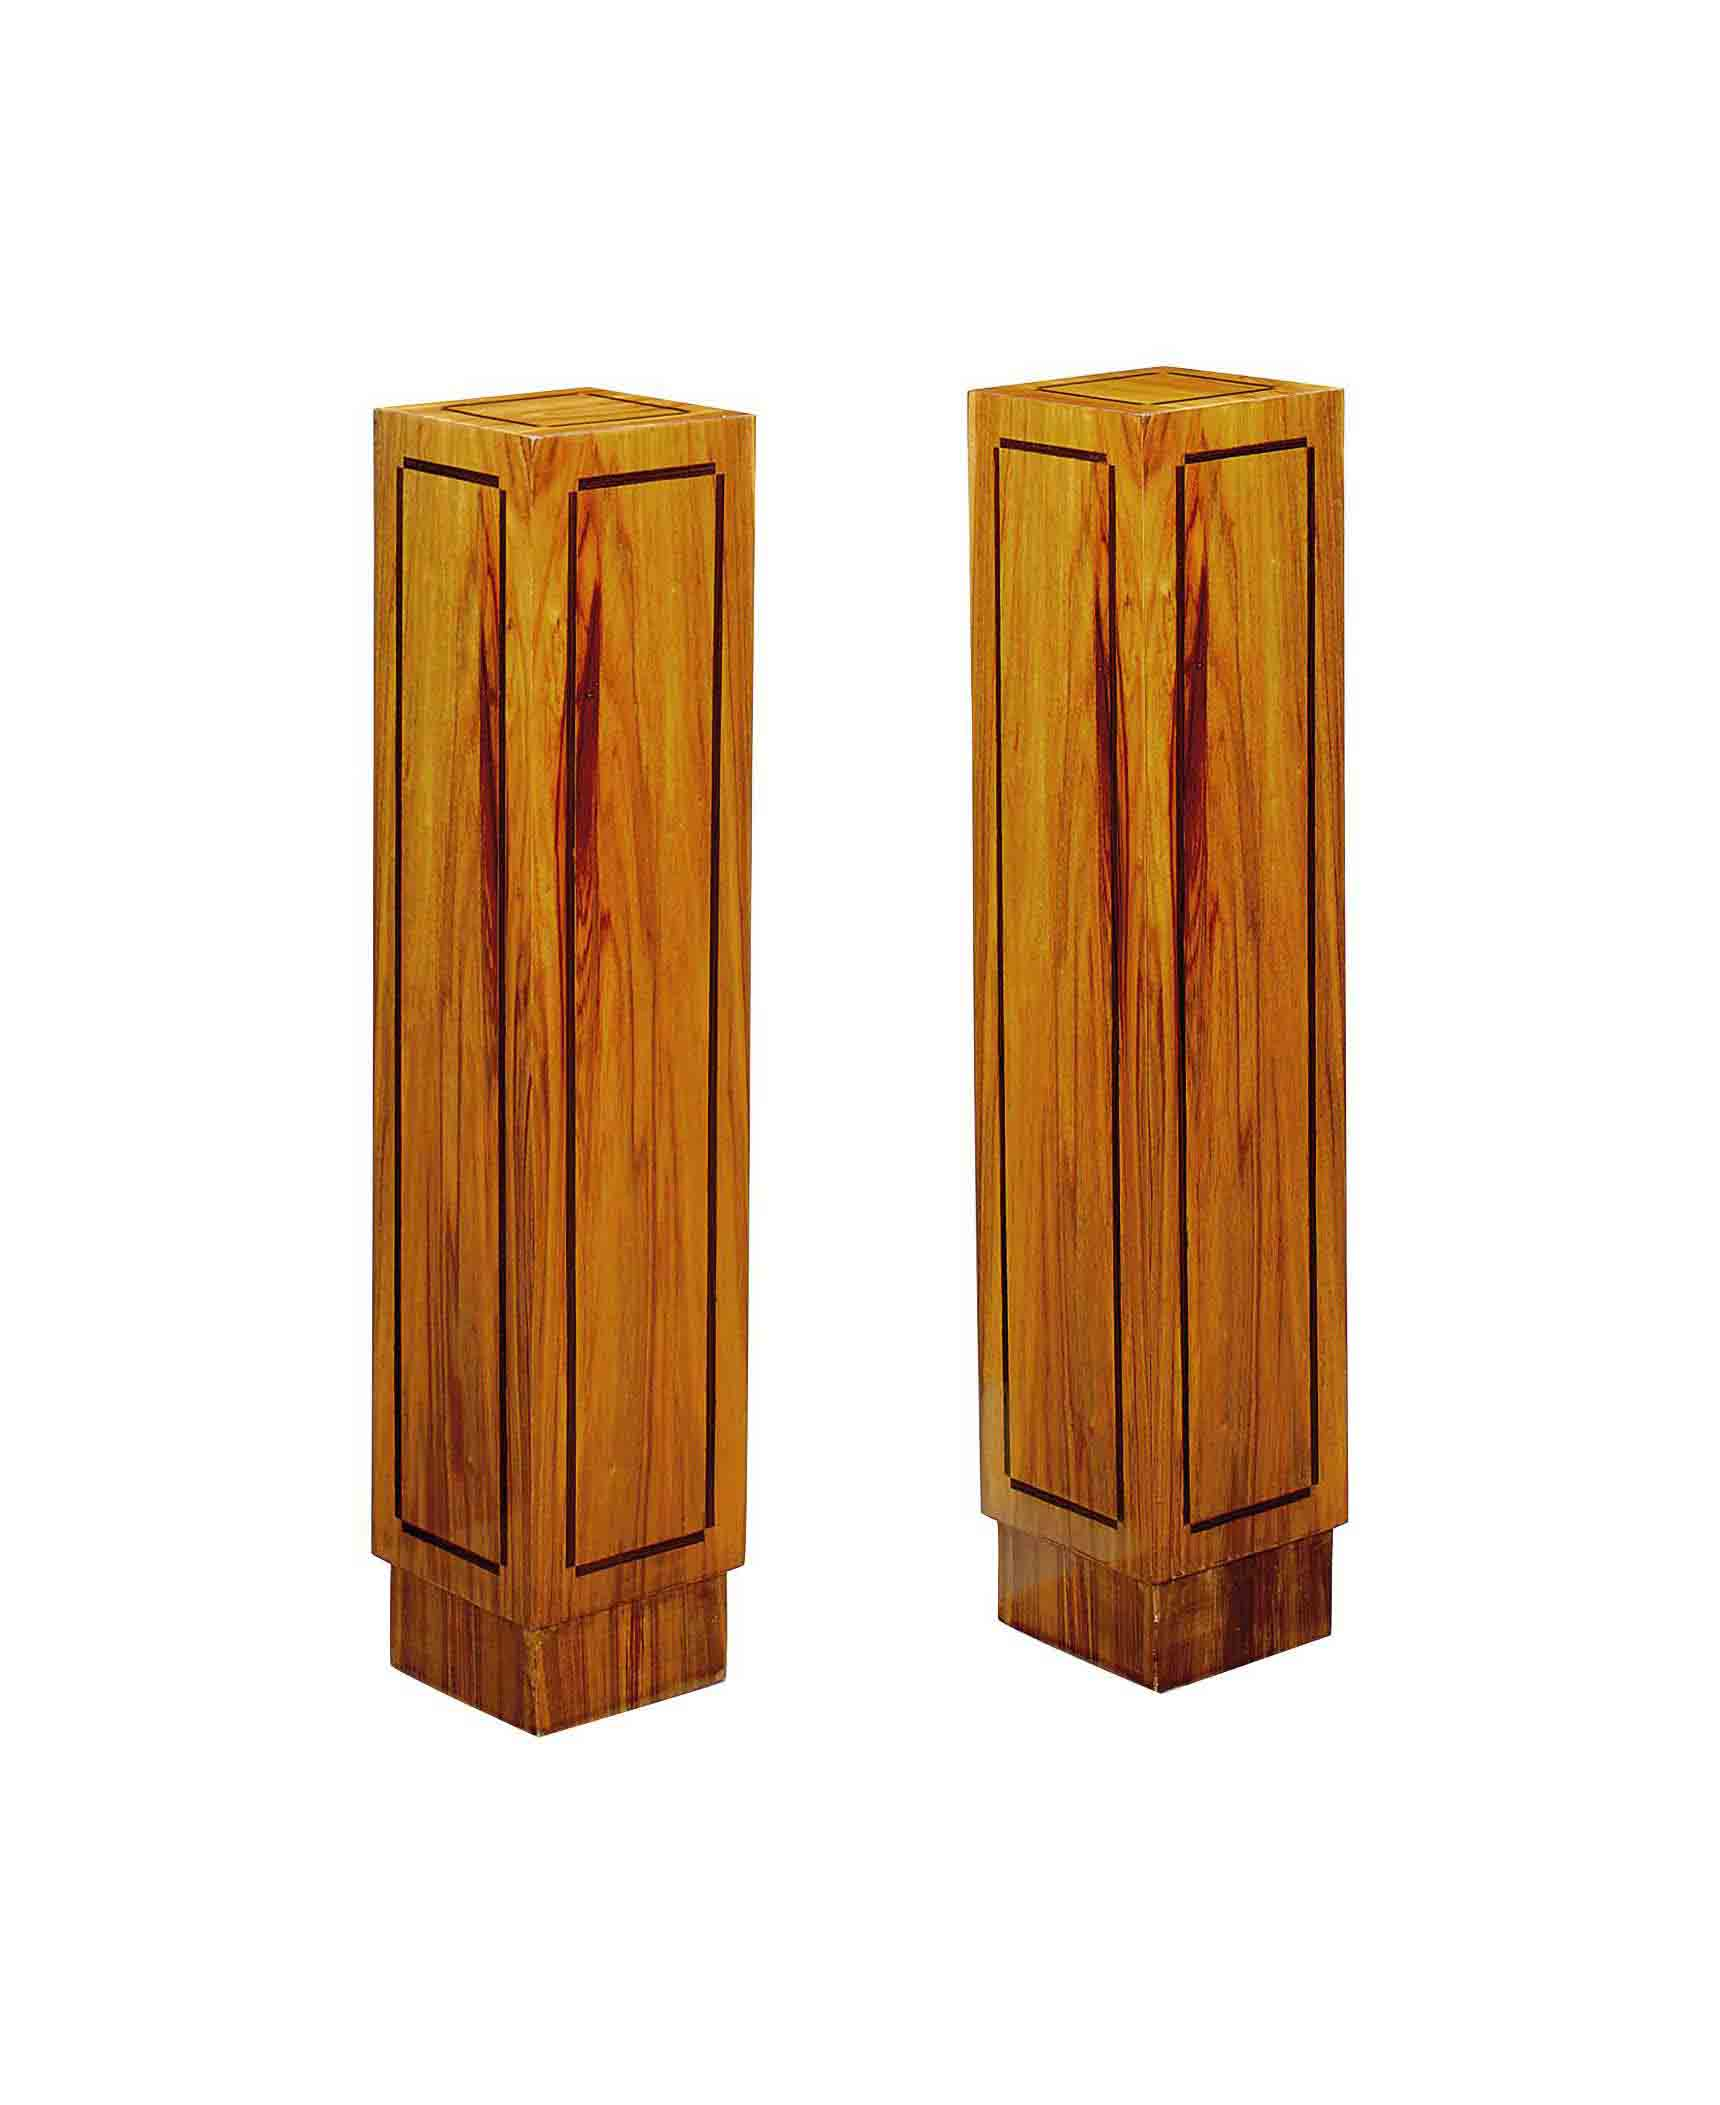 A PAIR OF WALNUT INLAID SQUARE